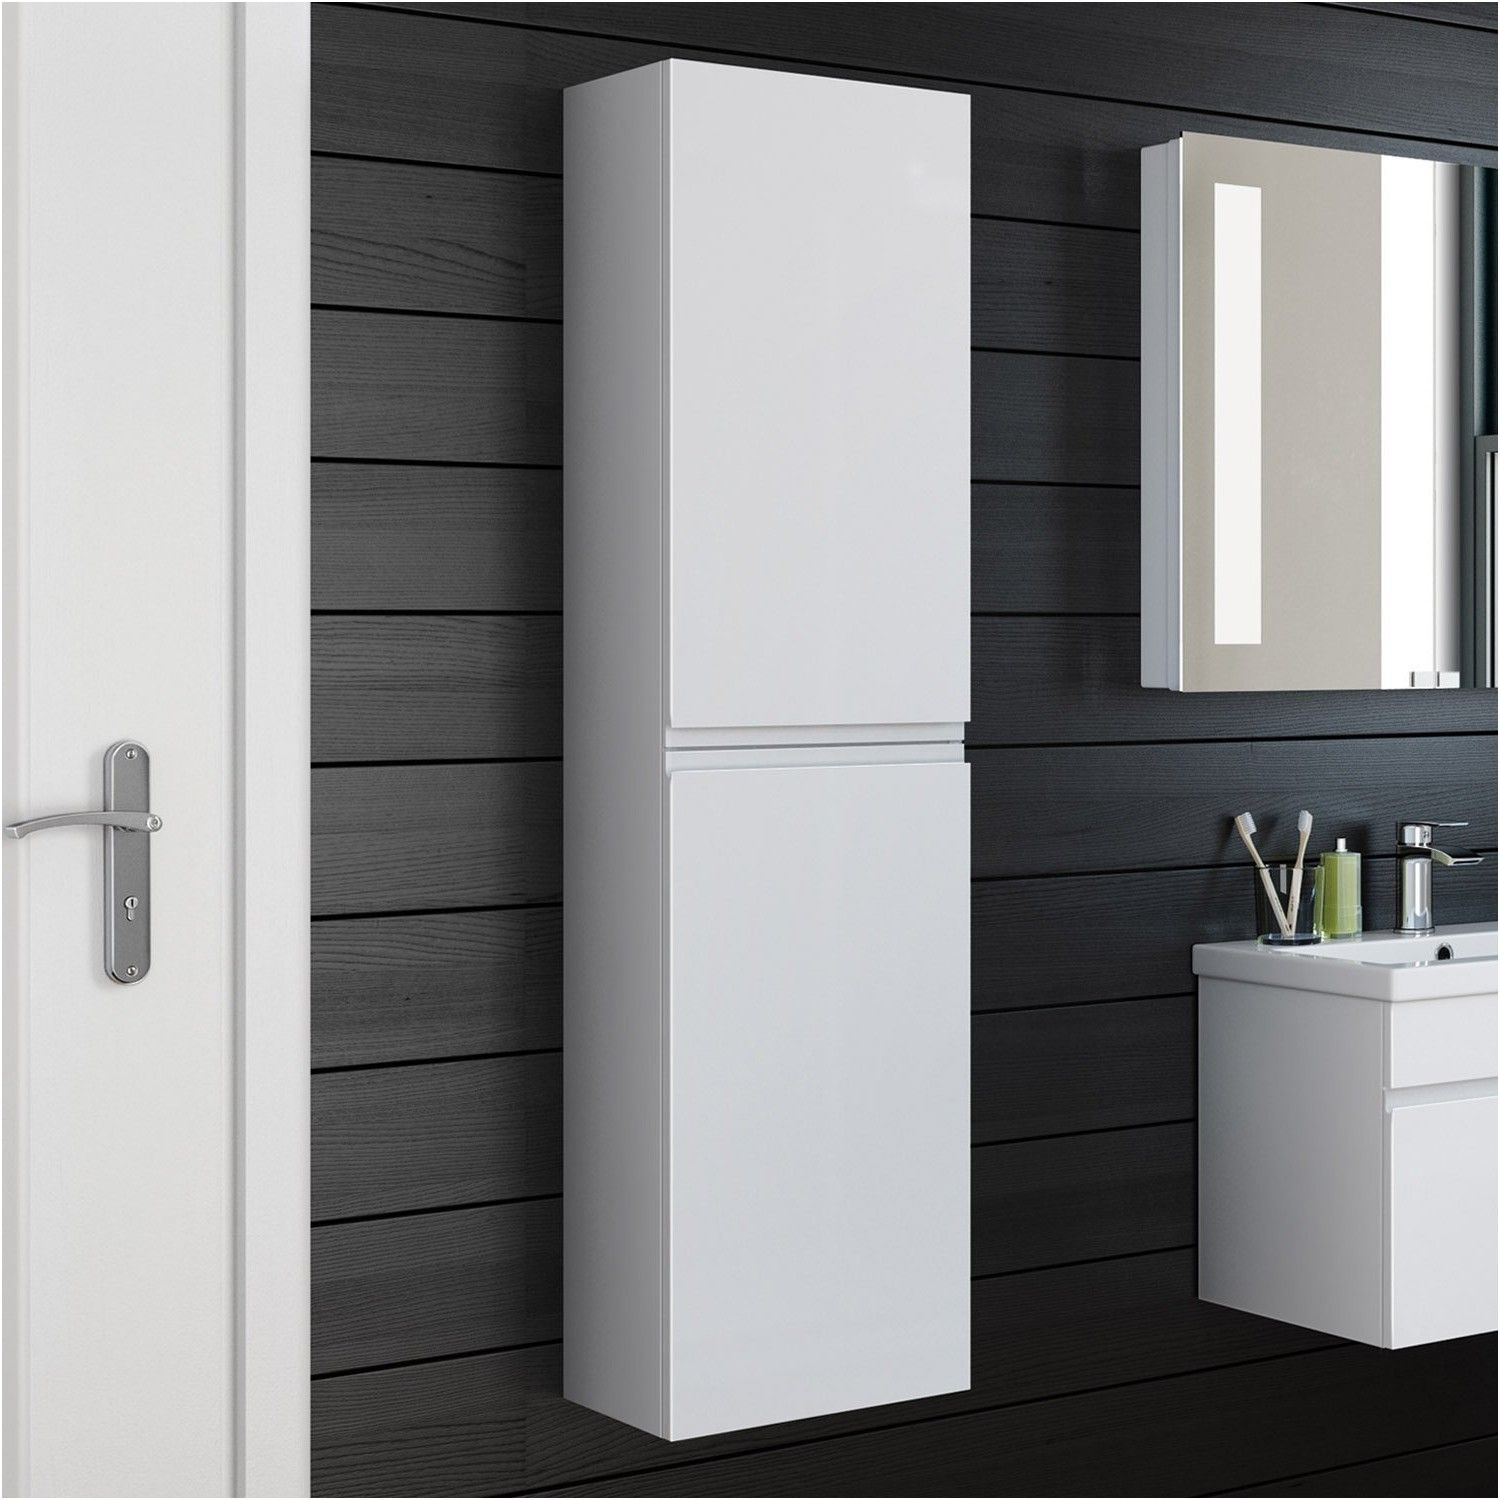 bathroom cabinet 1400x350 white storage wall mounted hung side from ...